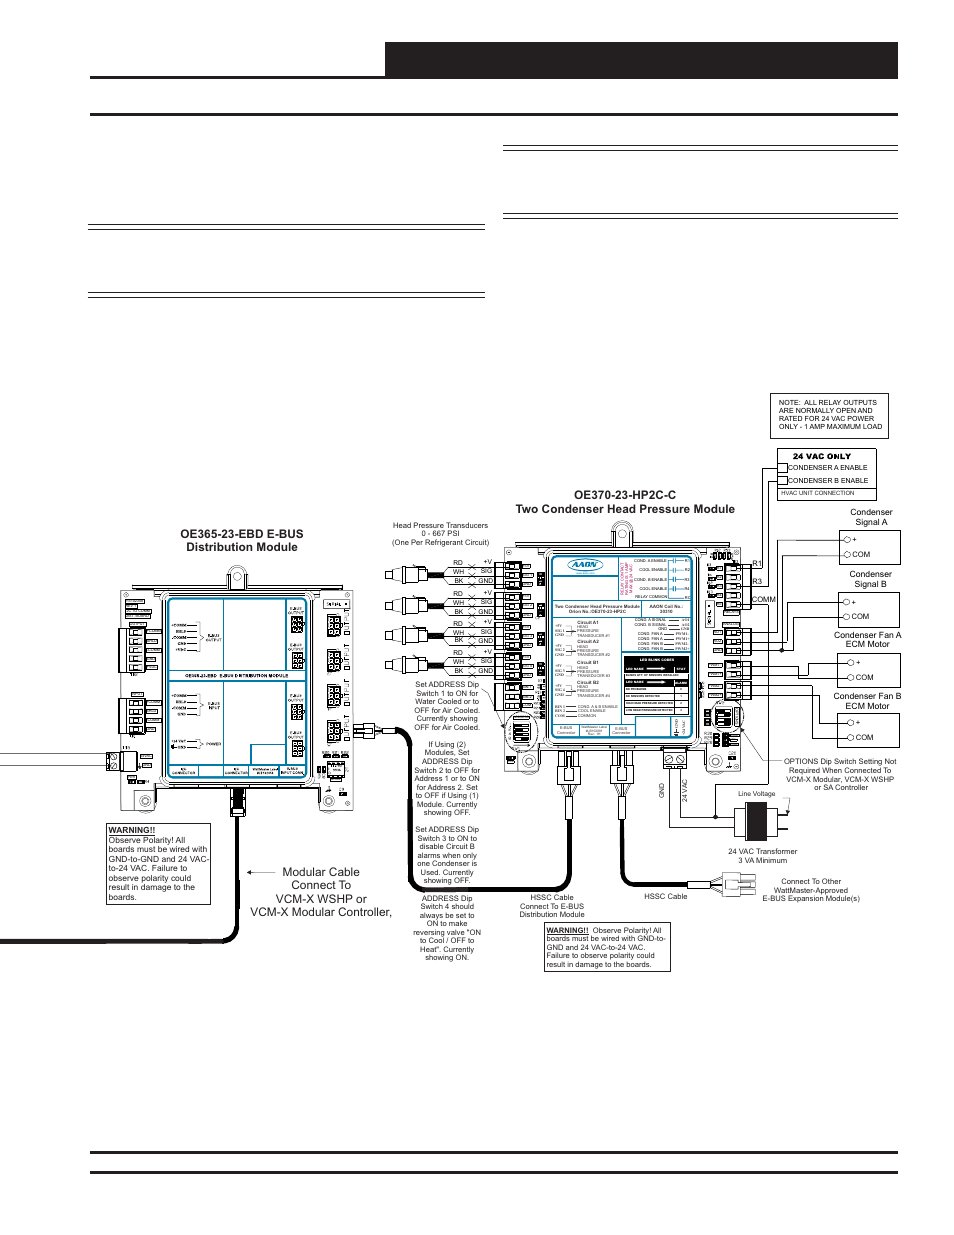 Two Condenser Head Pressure Module Technical Guide Orion System Ecm Motor Wiring Diagram For Hvac User Manual Page 7 24